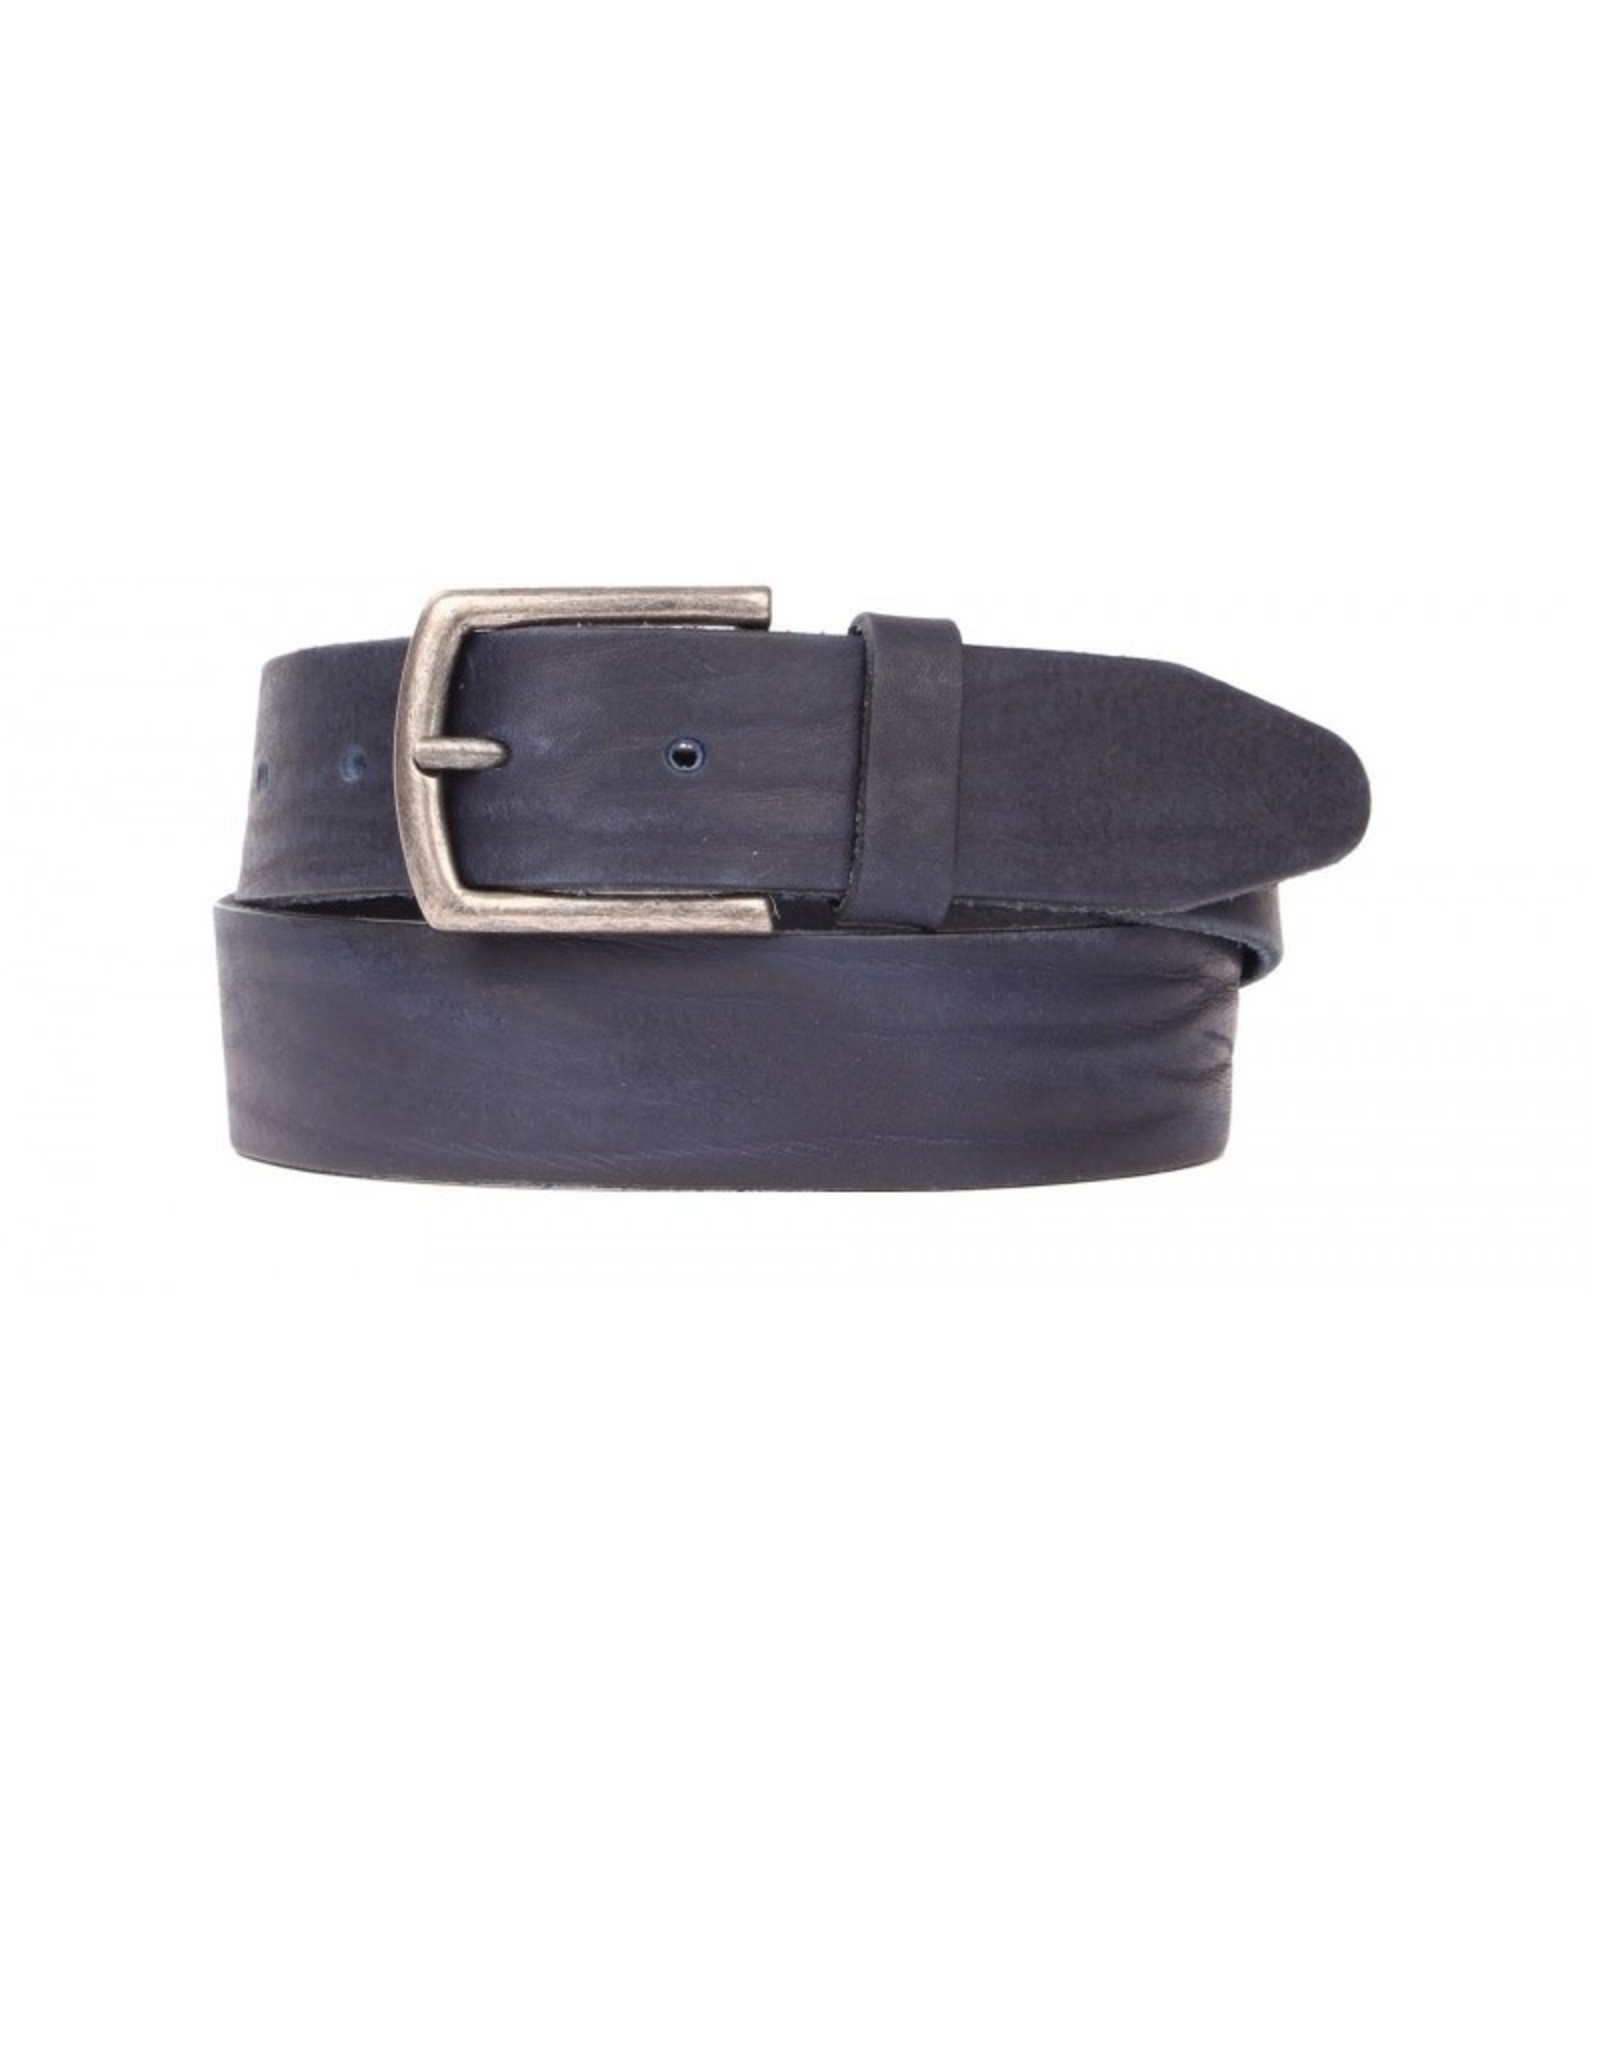 Legend Legend belt Blauw 40715